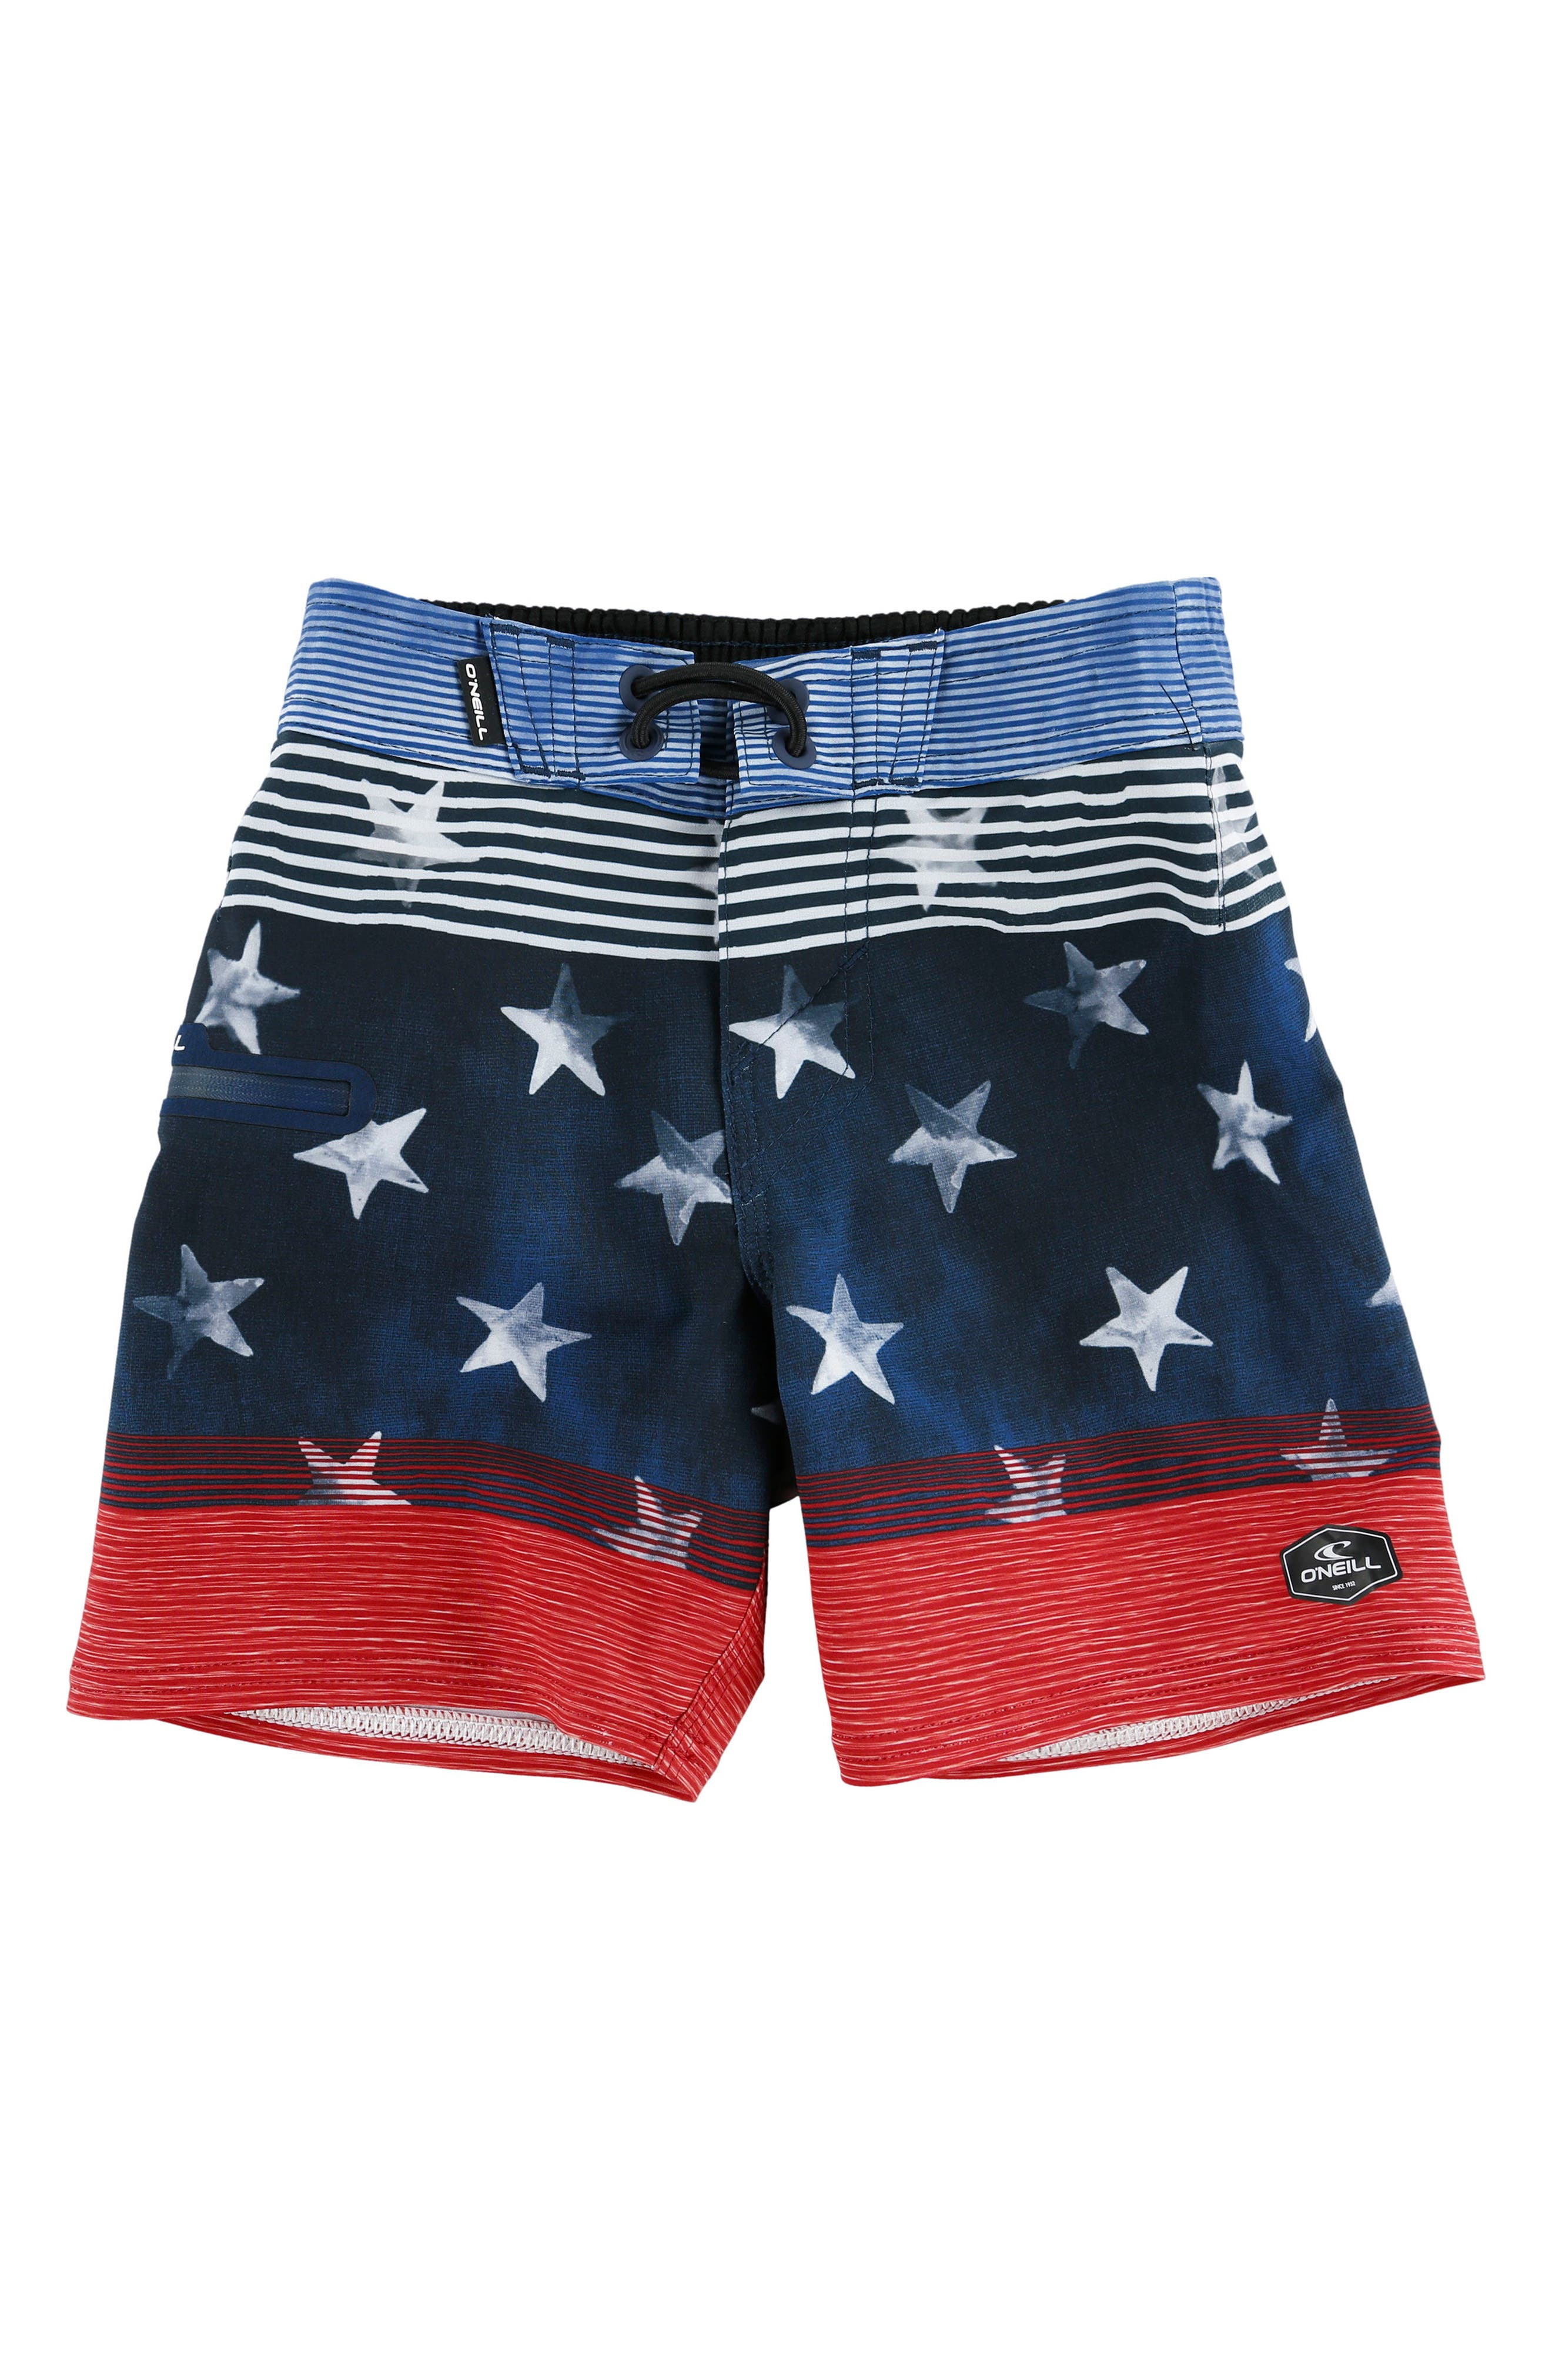 Hyperfreak Board Shorts,                         Main,                         color, Red White Blue